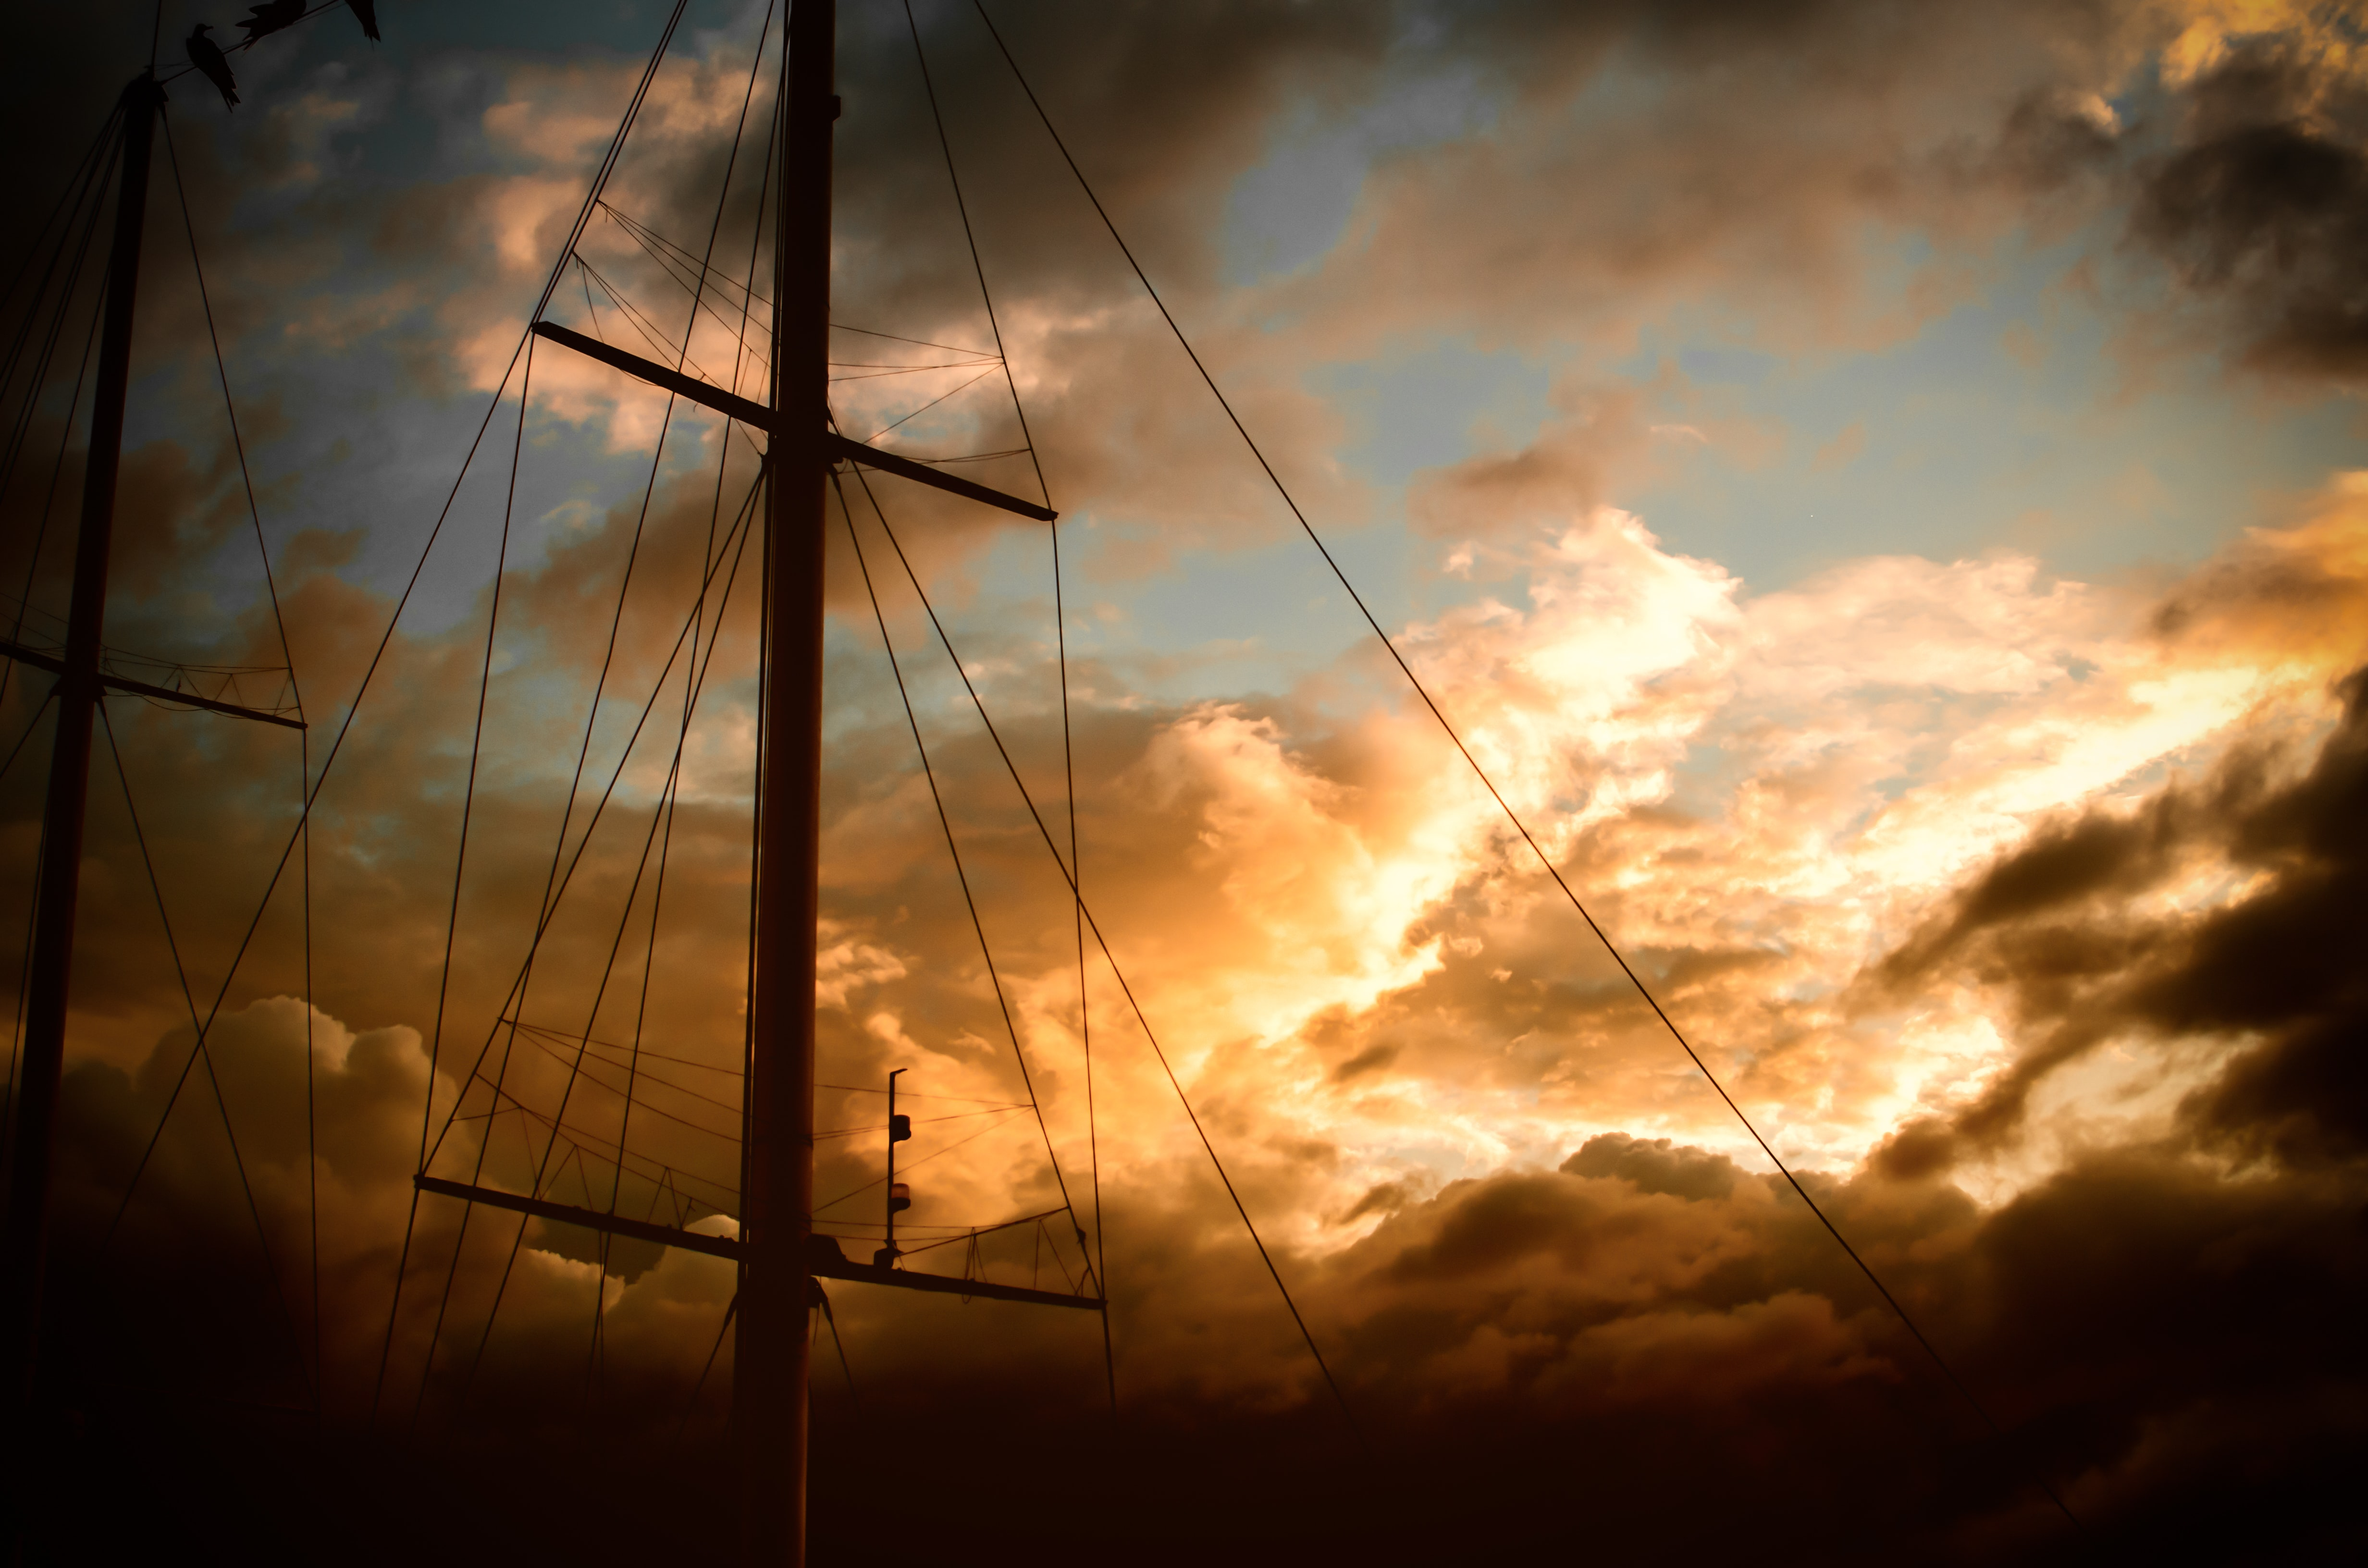 A ship's mast with rigging is set against golden clouds during sunset at La Paz.